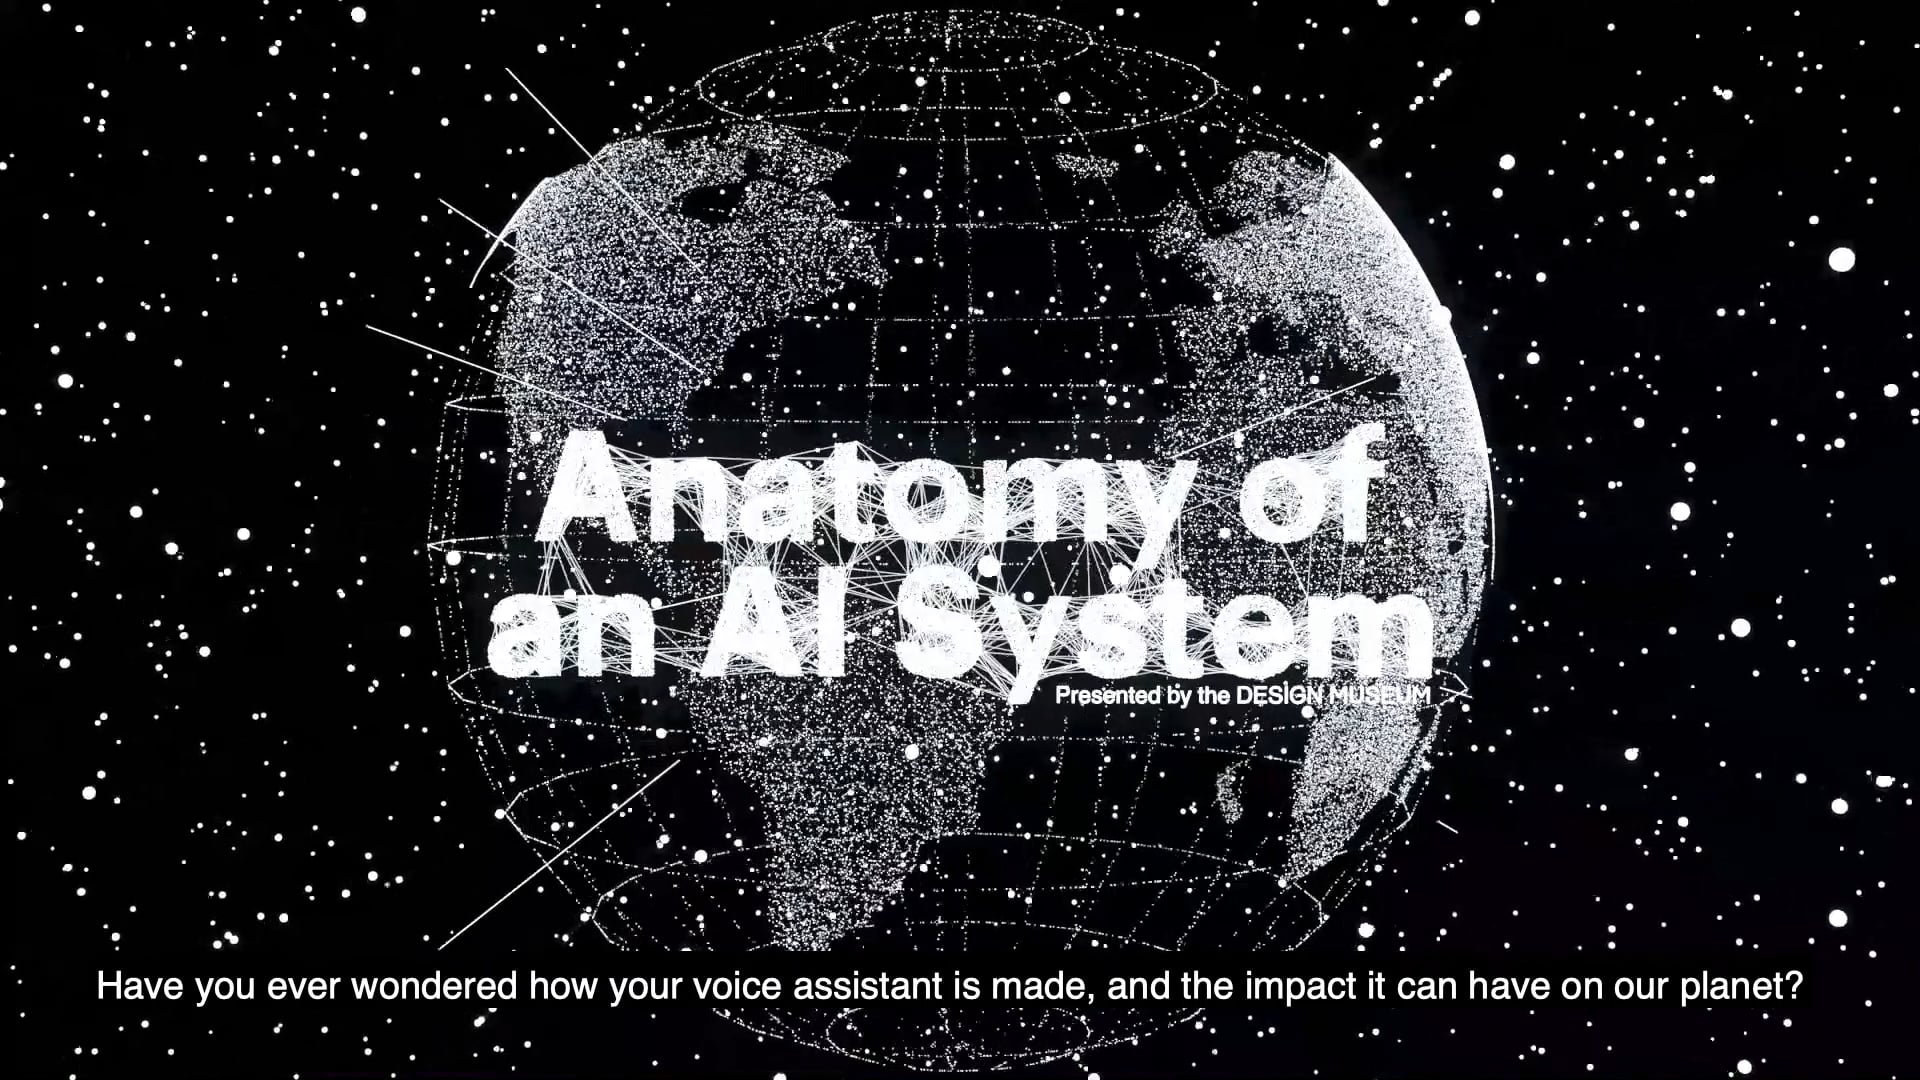 Anatomy of an AI System